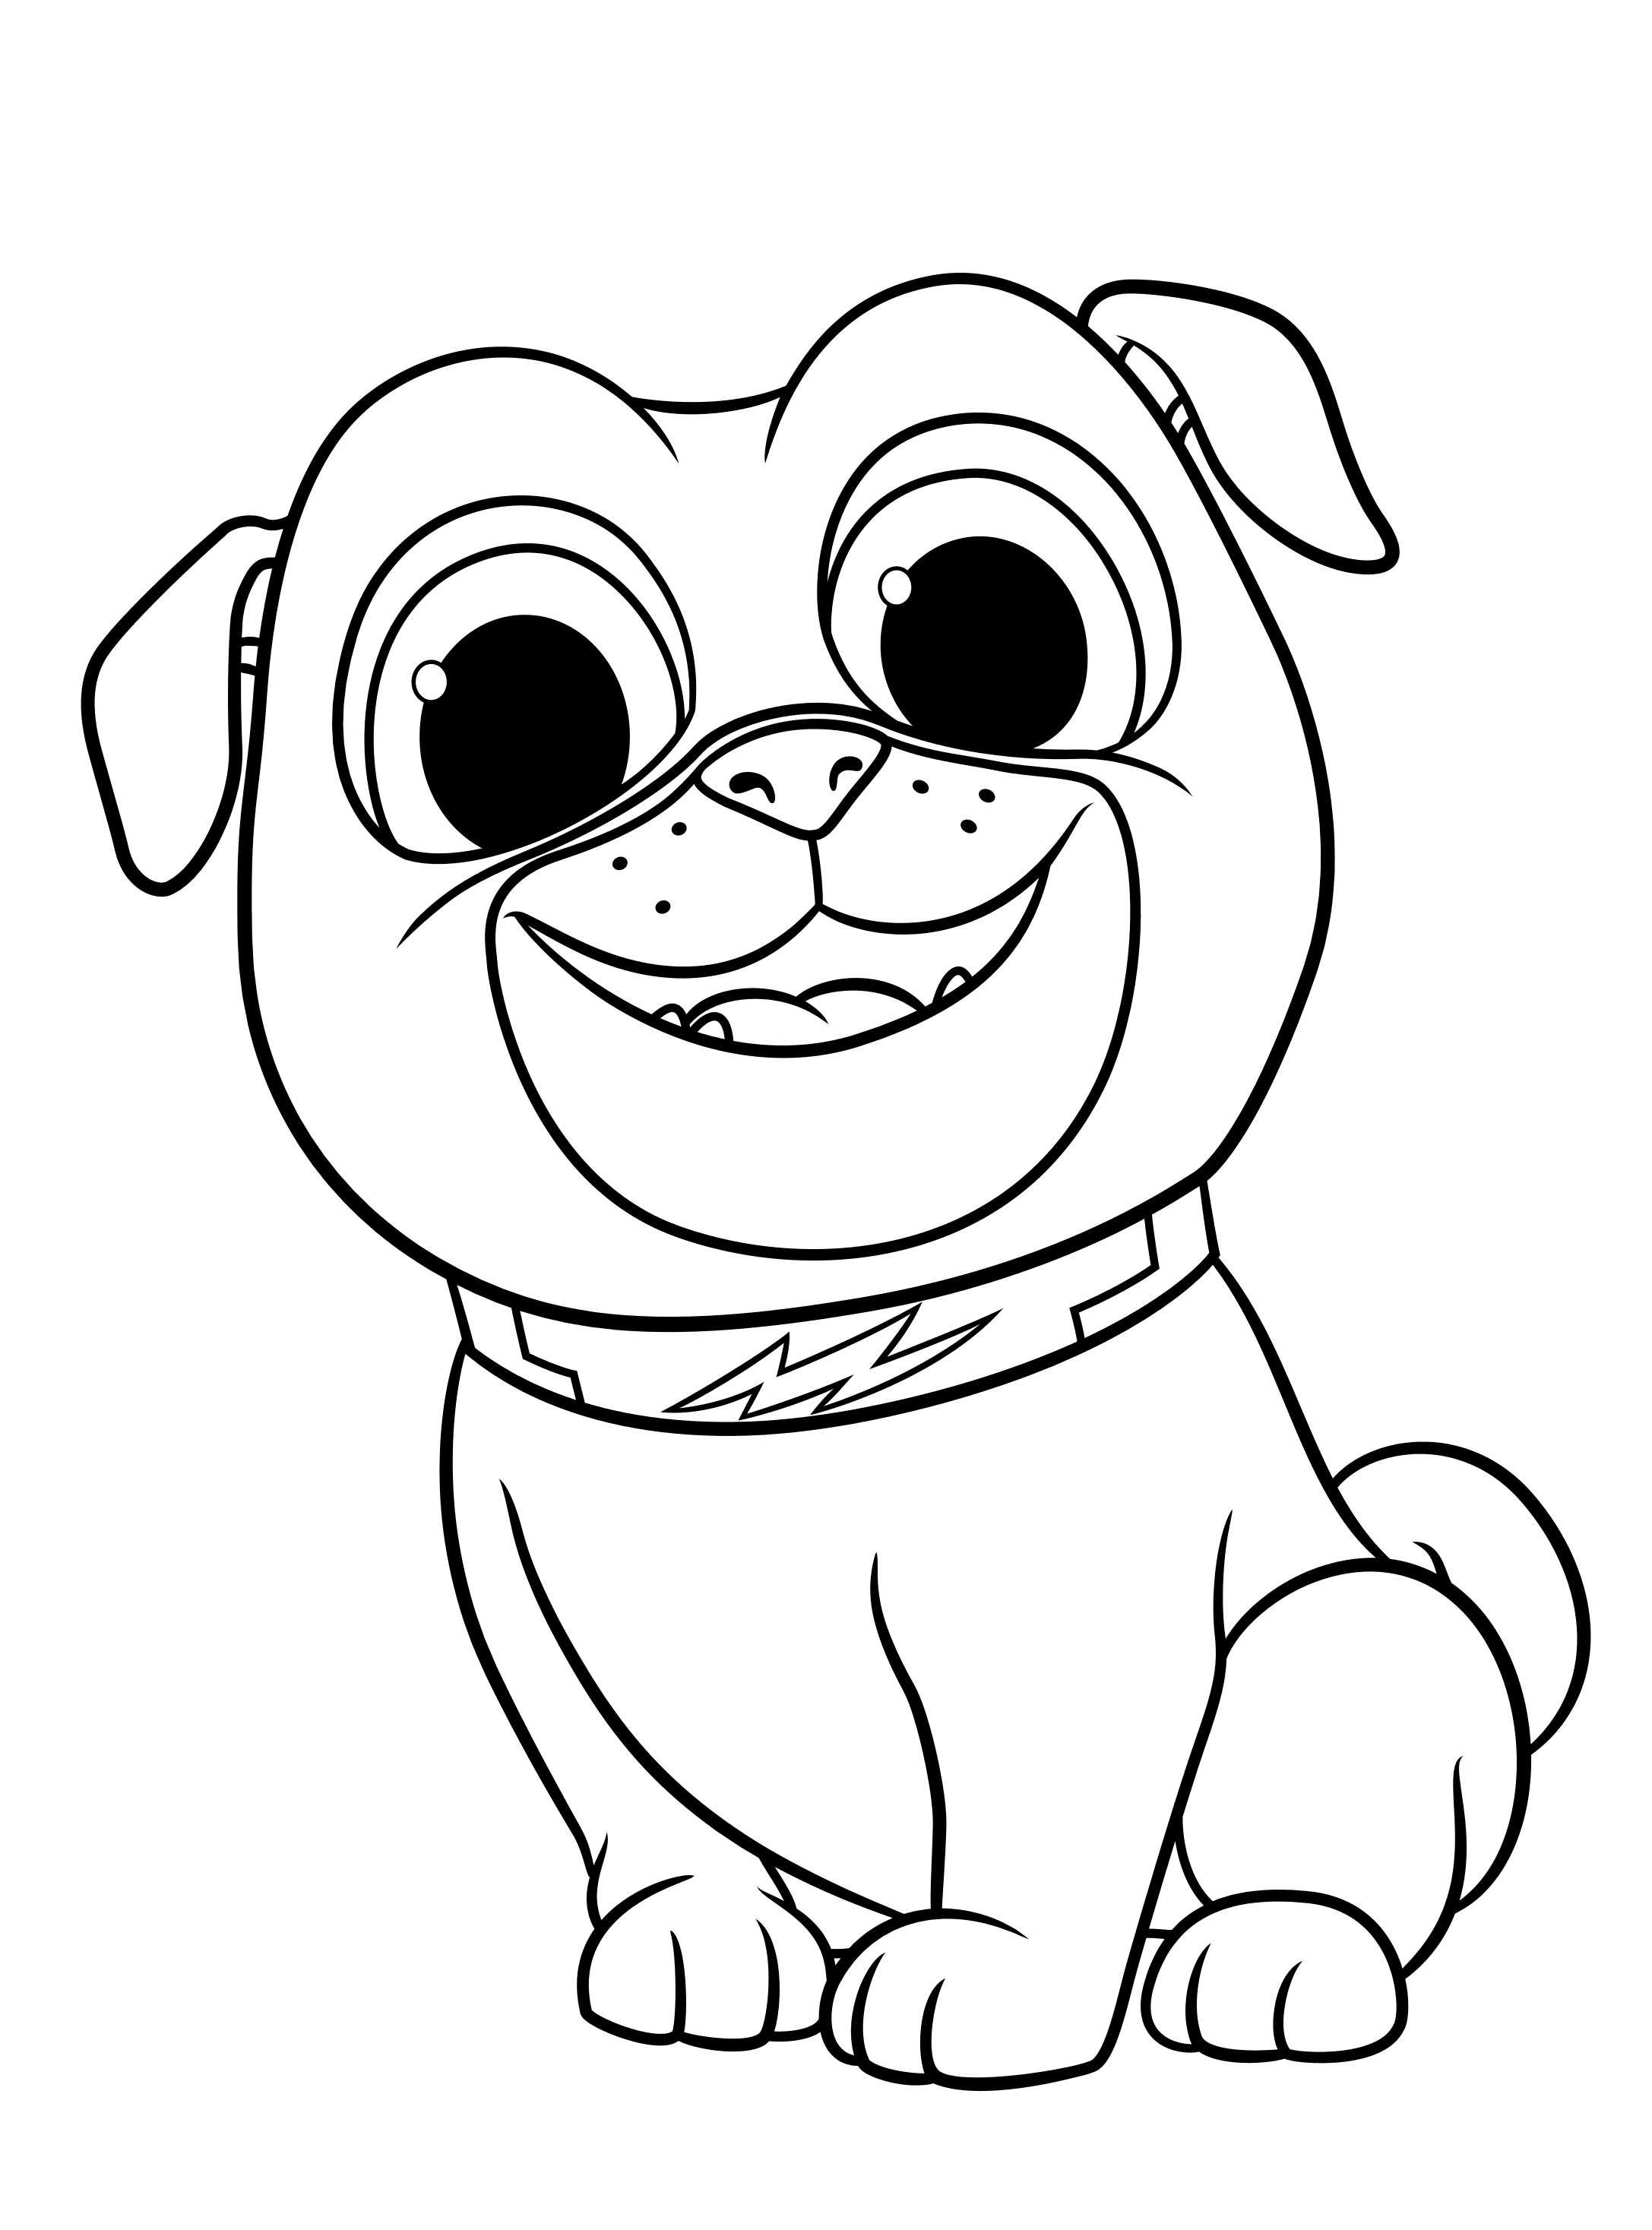 coloring sheet dog dog dogs adult coloring pages coloring dog sheet